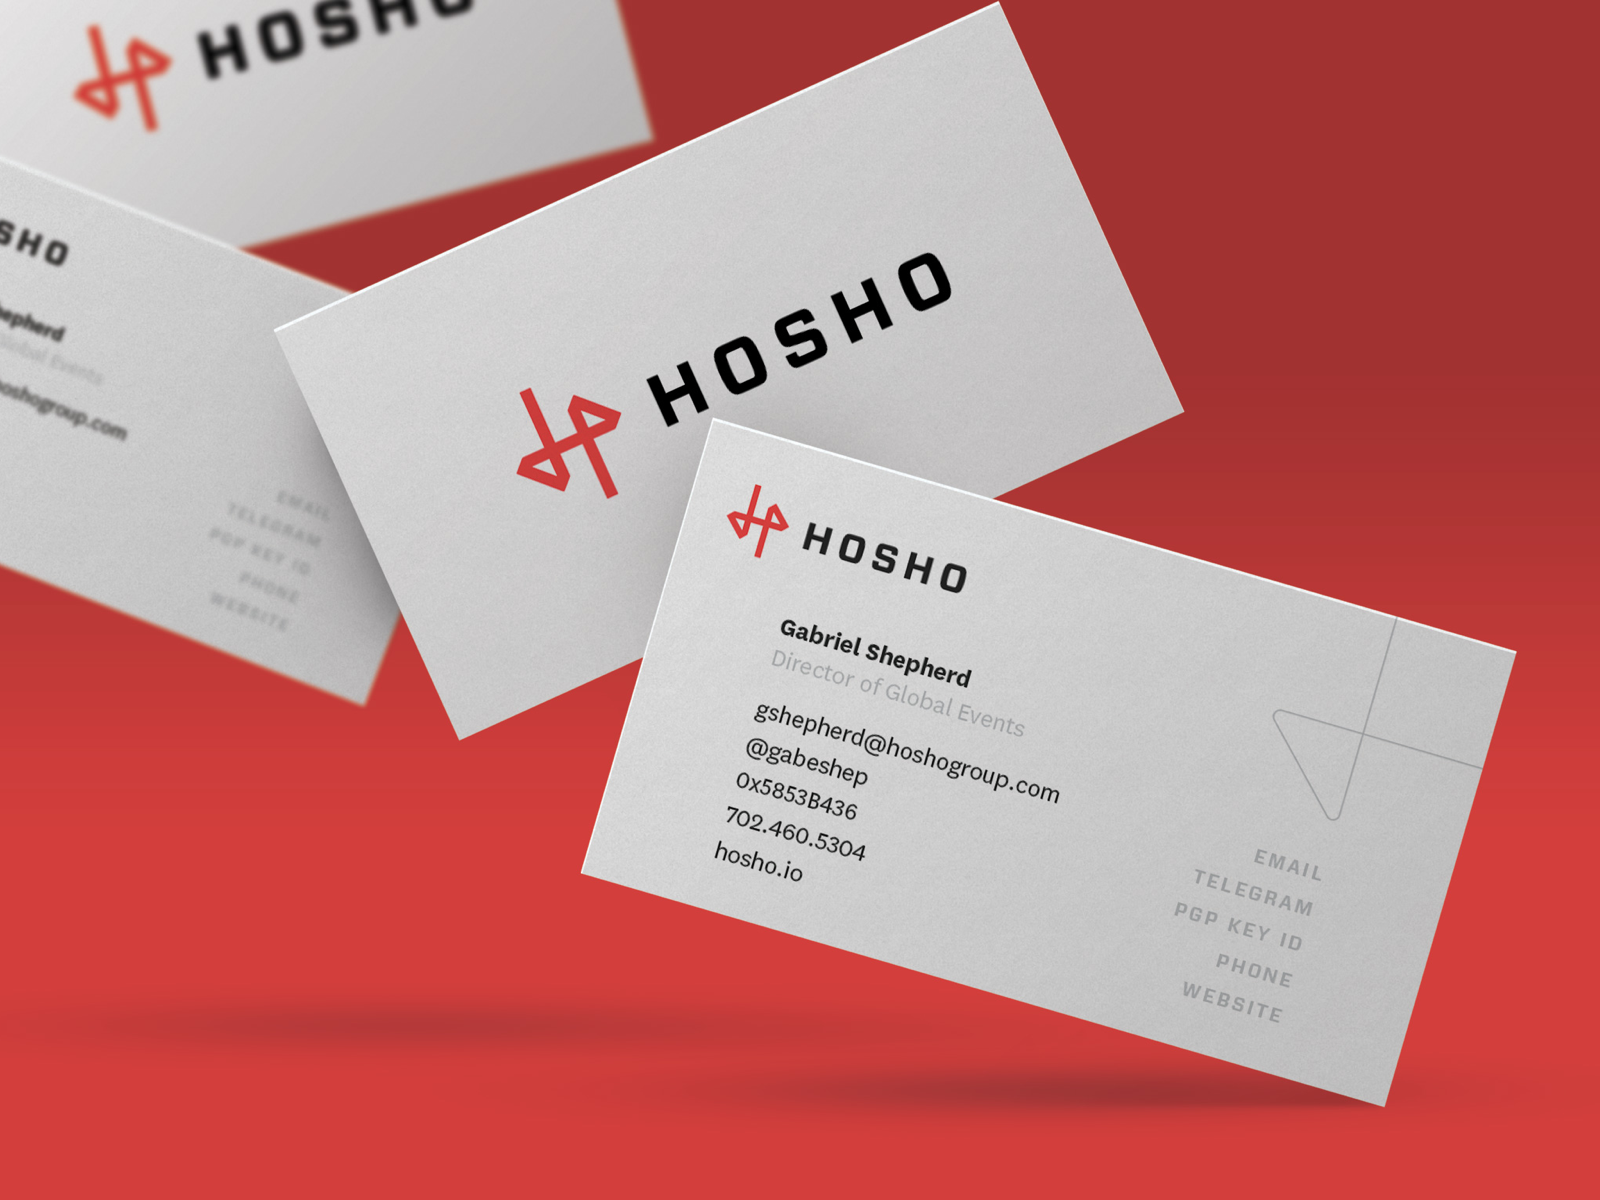 Hosho business cards 2x